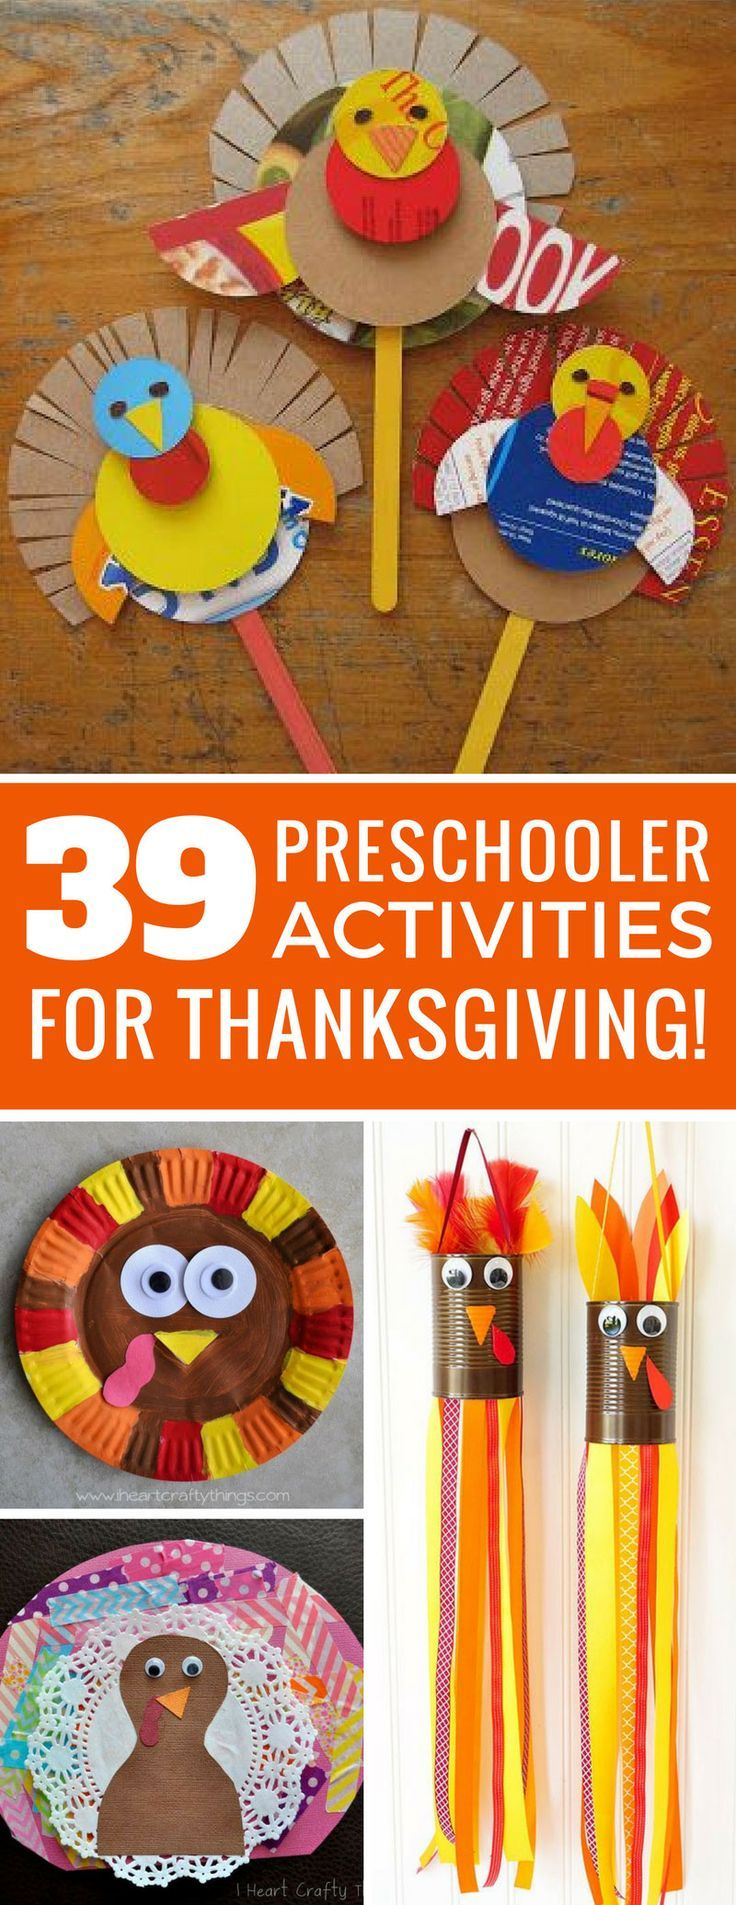 These Thanksgiving activities for preschoolers are so much fun- all kinds of turkey crafts for kids! A great way to keep little ones busy and crafty this holiday season!